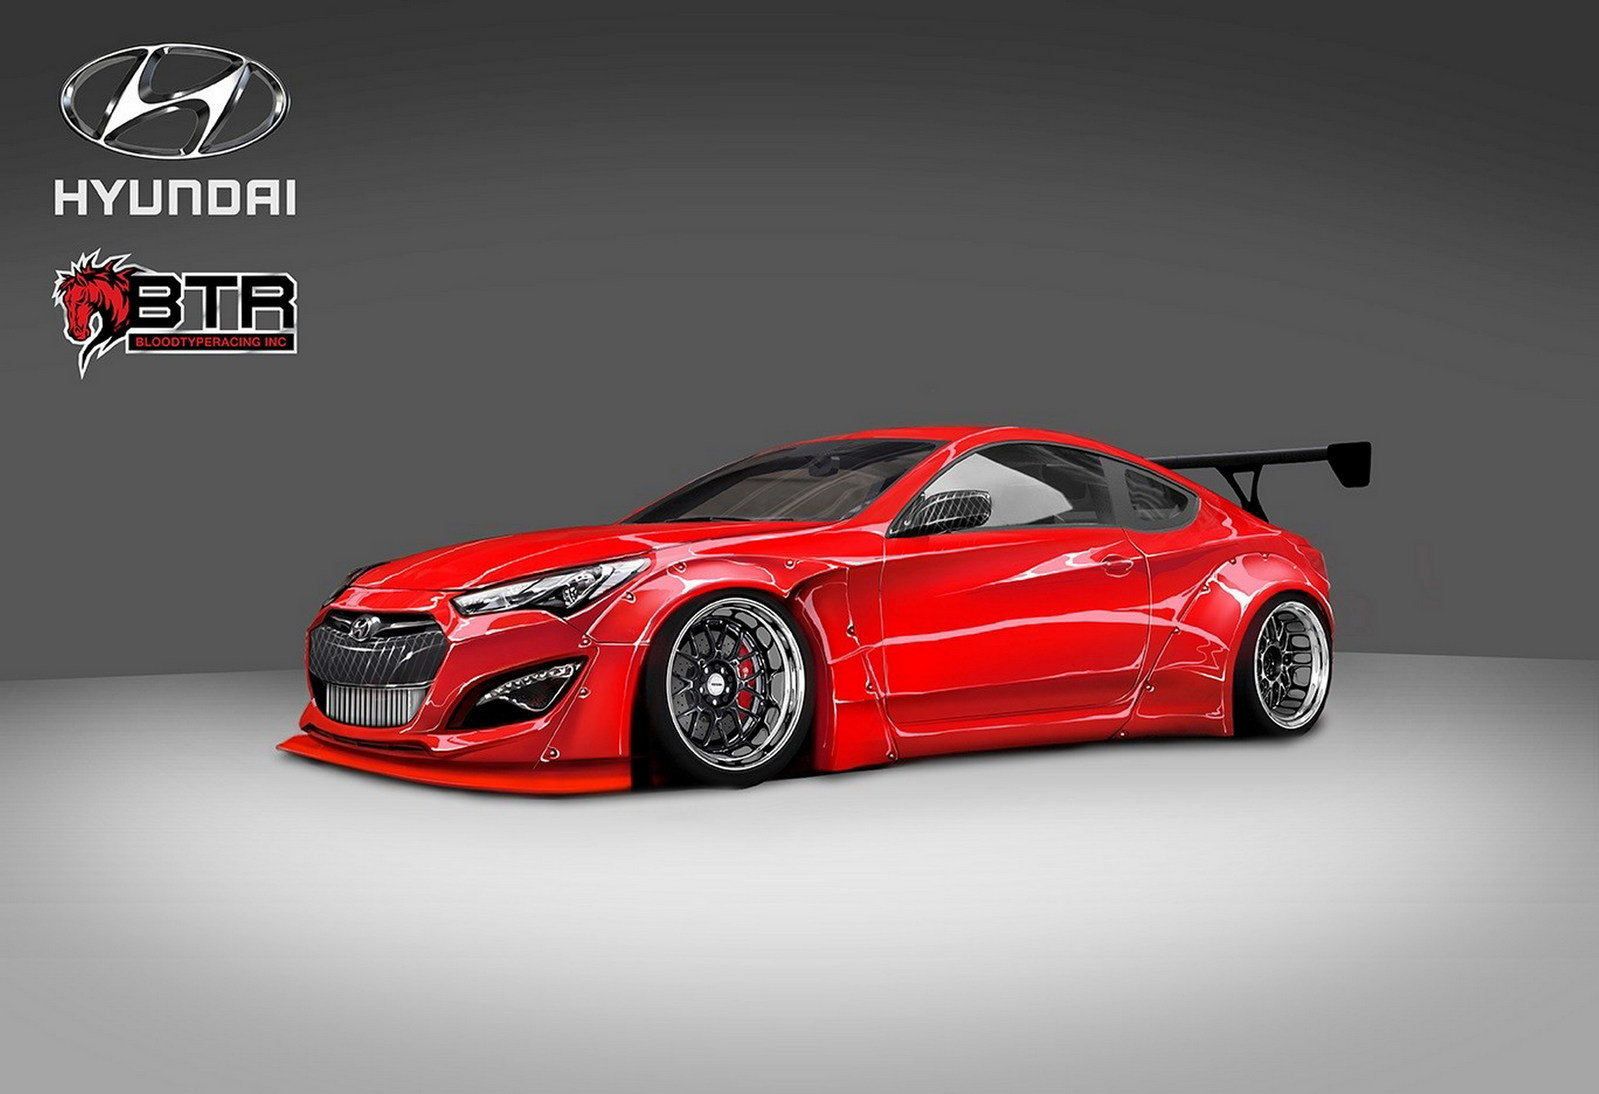 2015 hyundai genesis coupe by blood type racing picture 576175 car review top speed. Black Bedroom Furniture Sets. Home Design Ideas